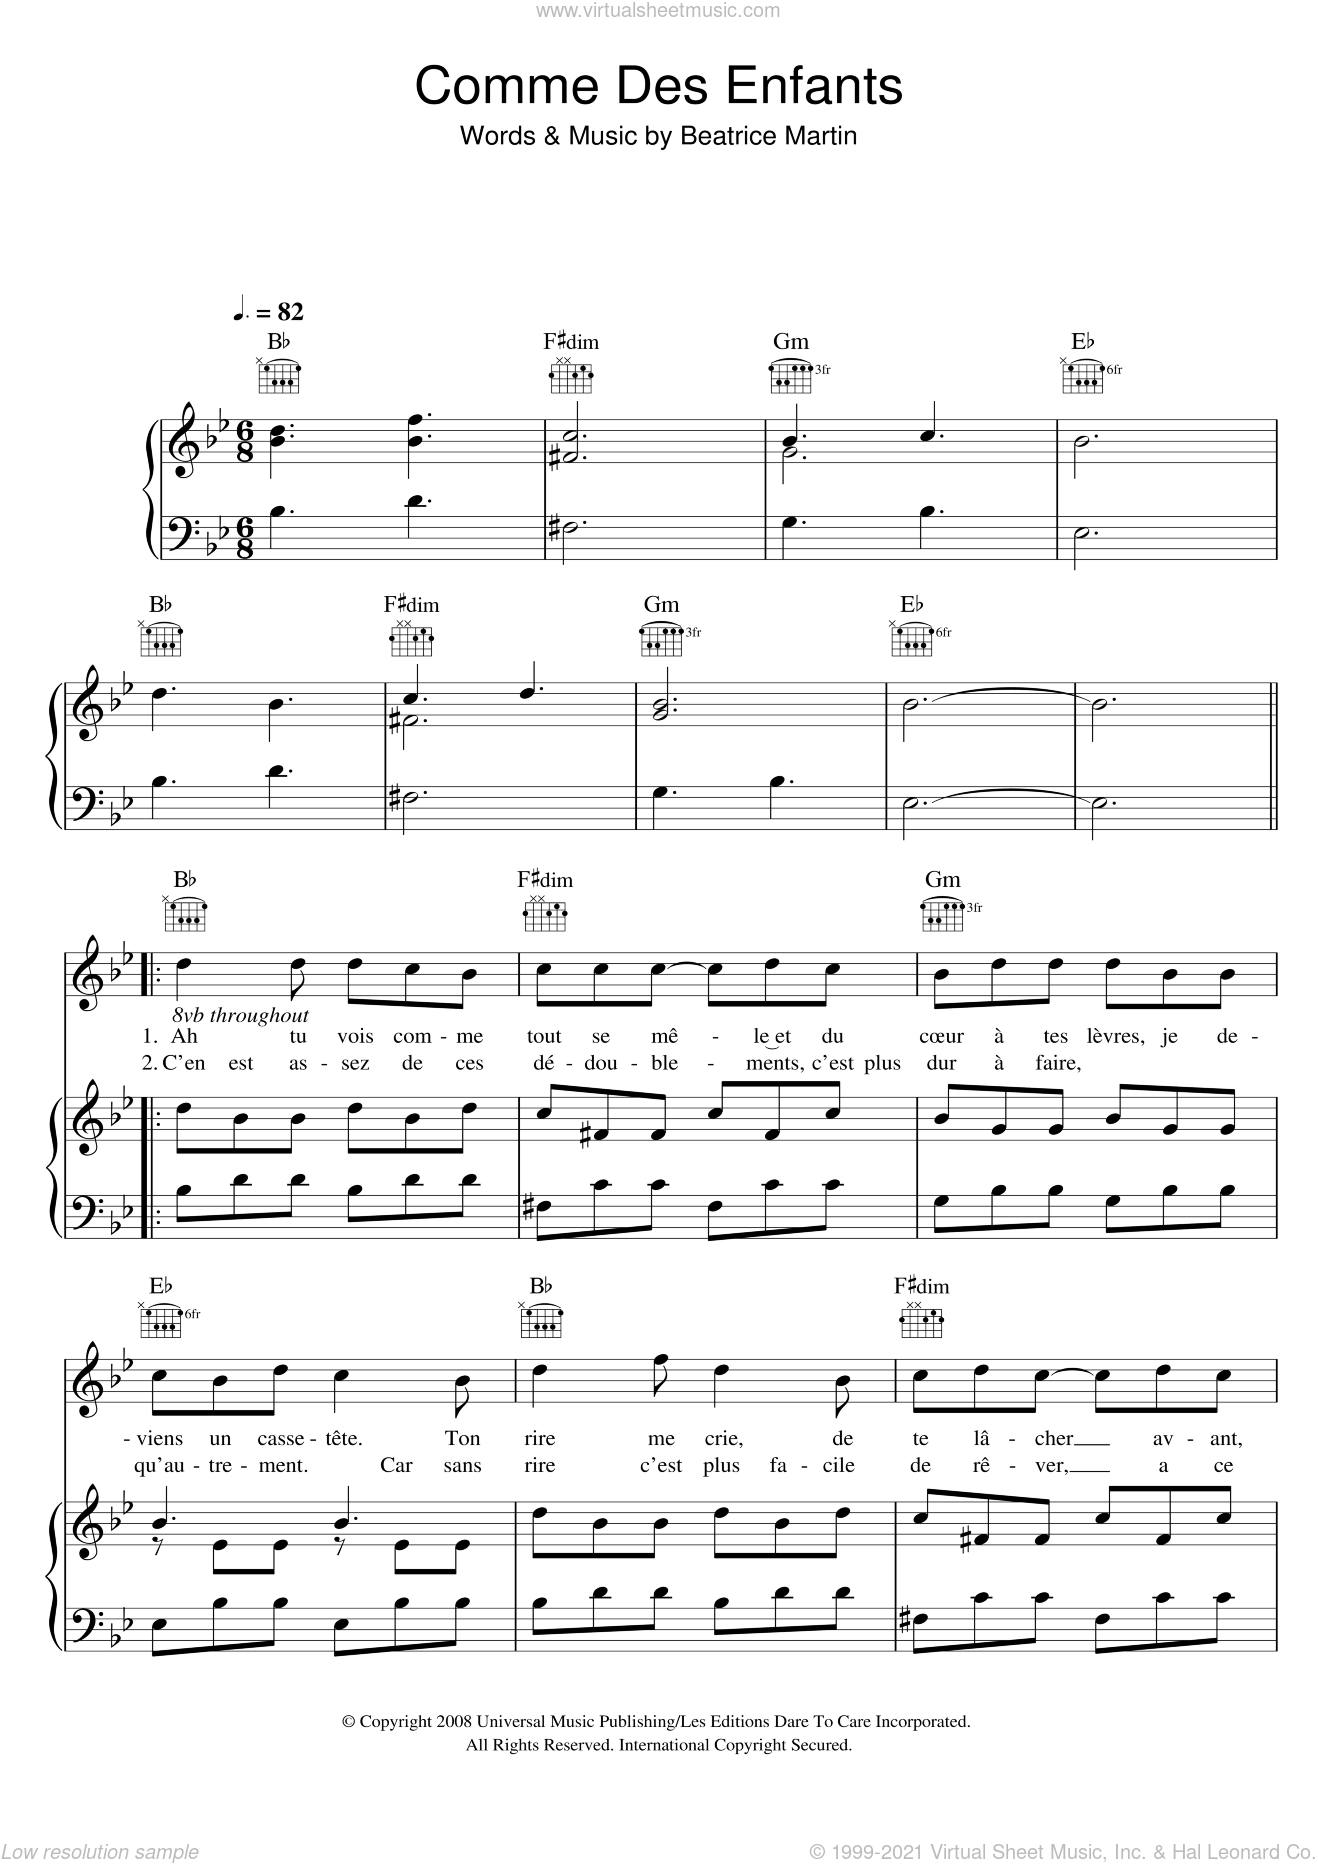 Comme Des Enfants sheet music for voice, piano or guitar by Coeur De Pirate and Beatrice Martin, intermediate skill level